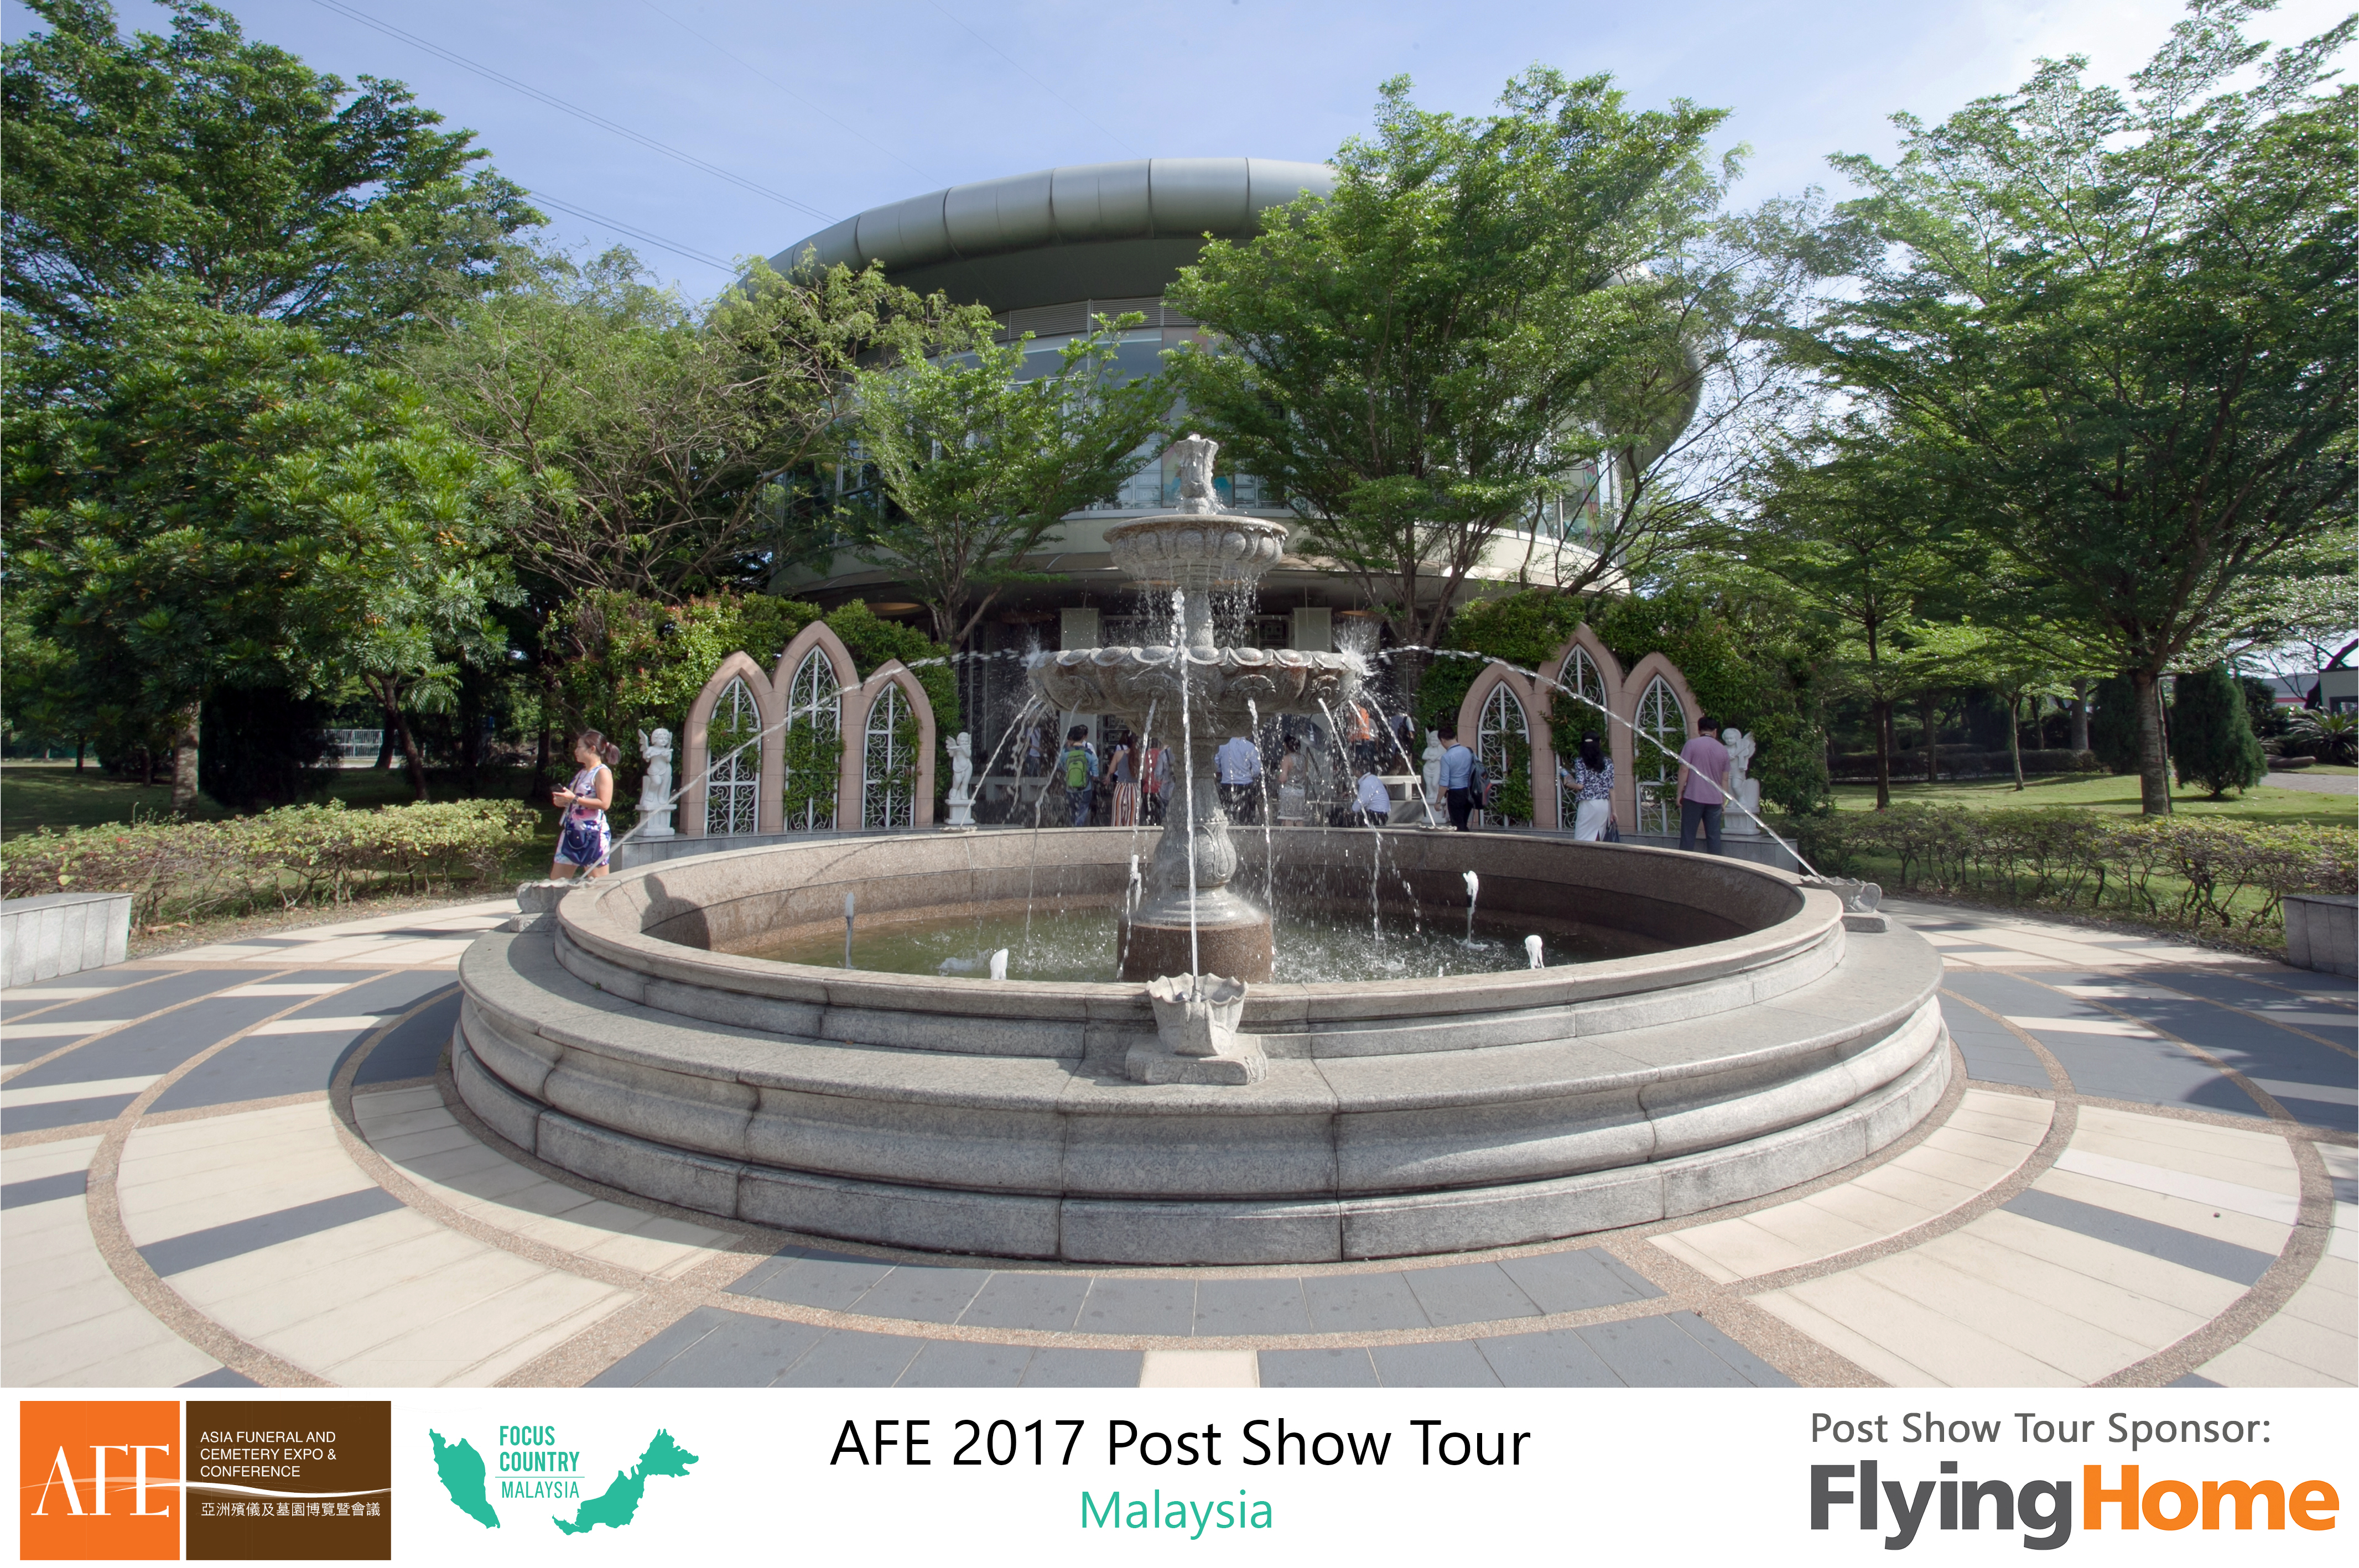 AFE Post Show Tour 2017 Day 2 - 17